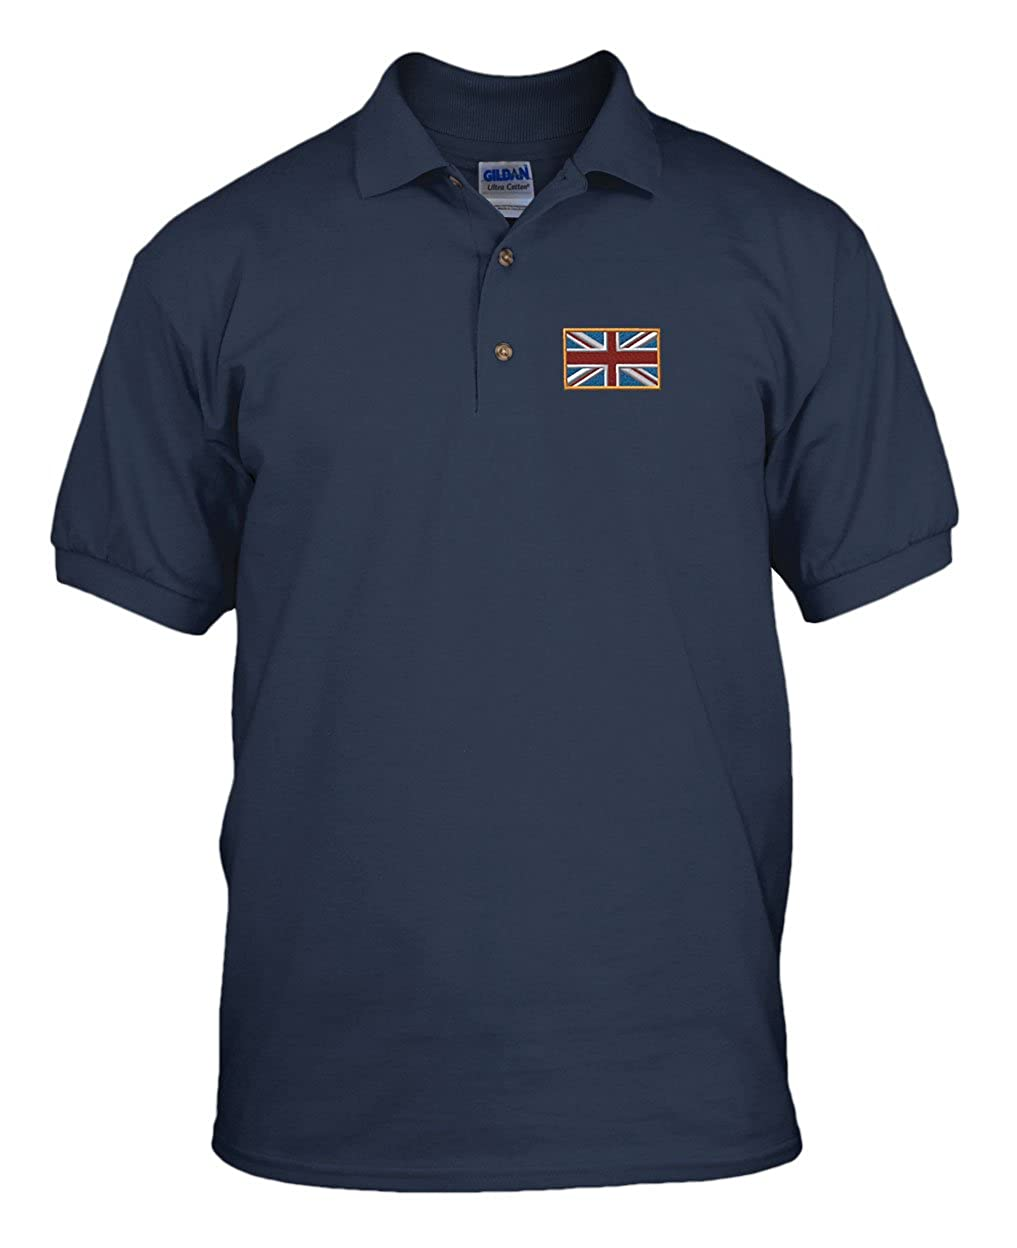 British Flag Country Embroidery Cotton Short Sleeve Polo Jersey Shirt POLOCOFLAG074